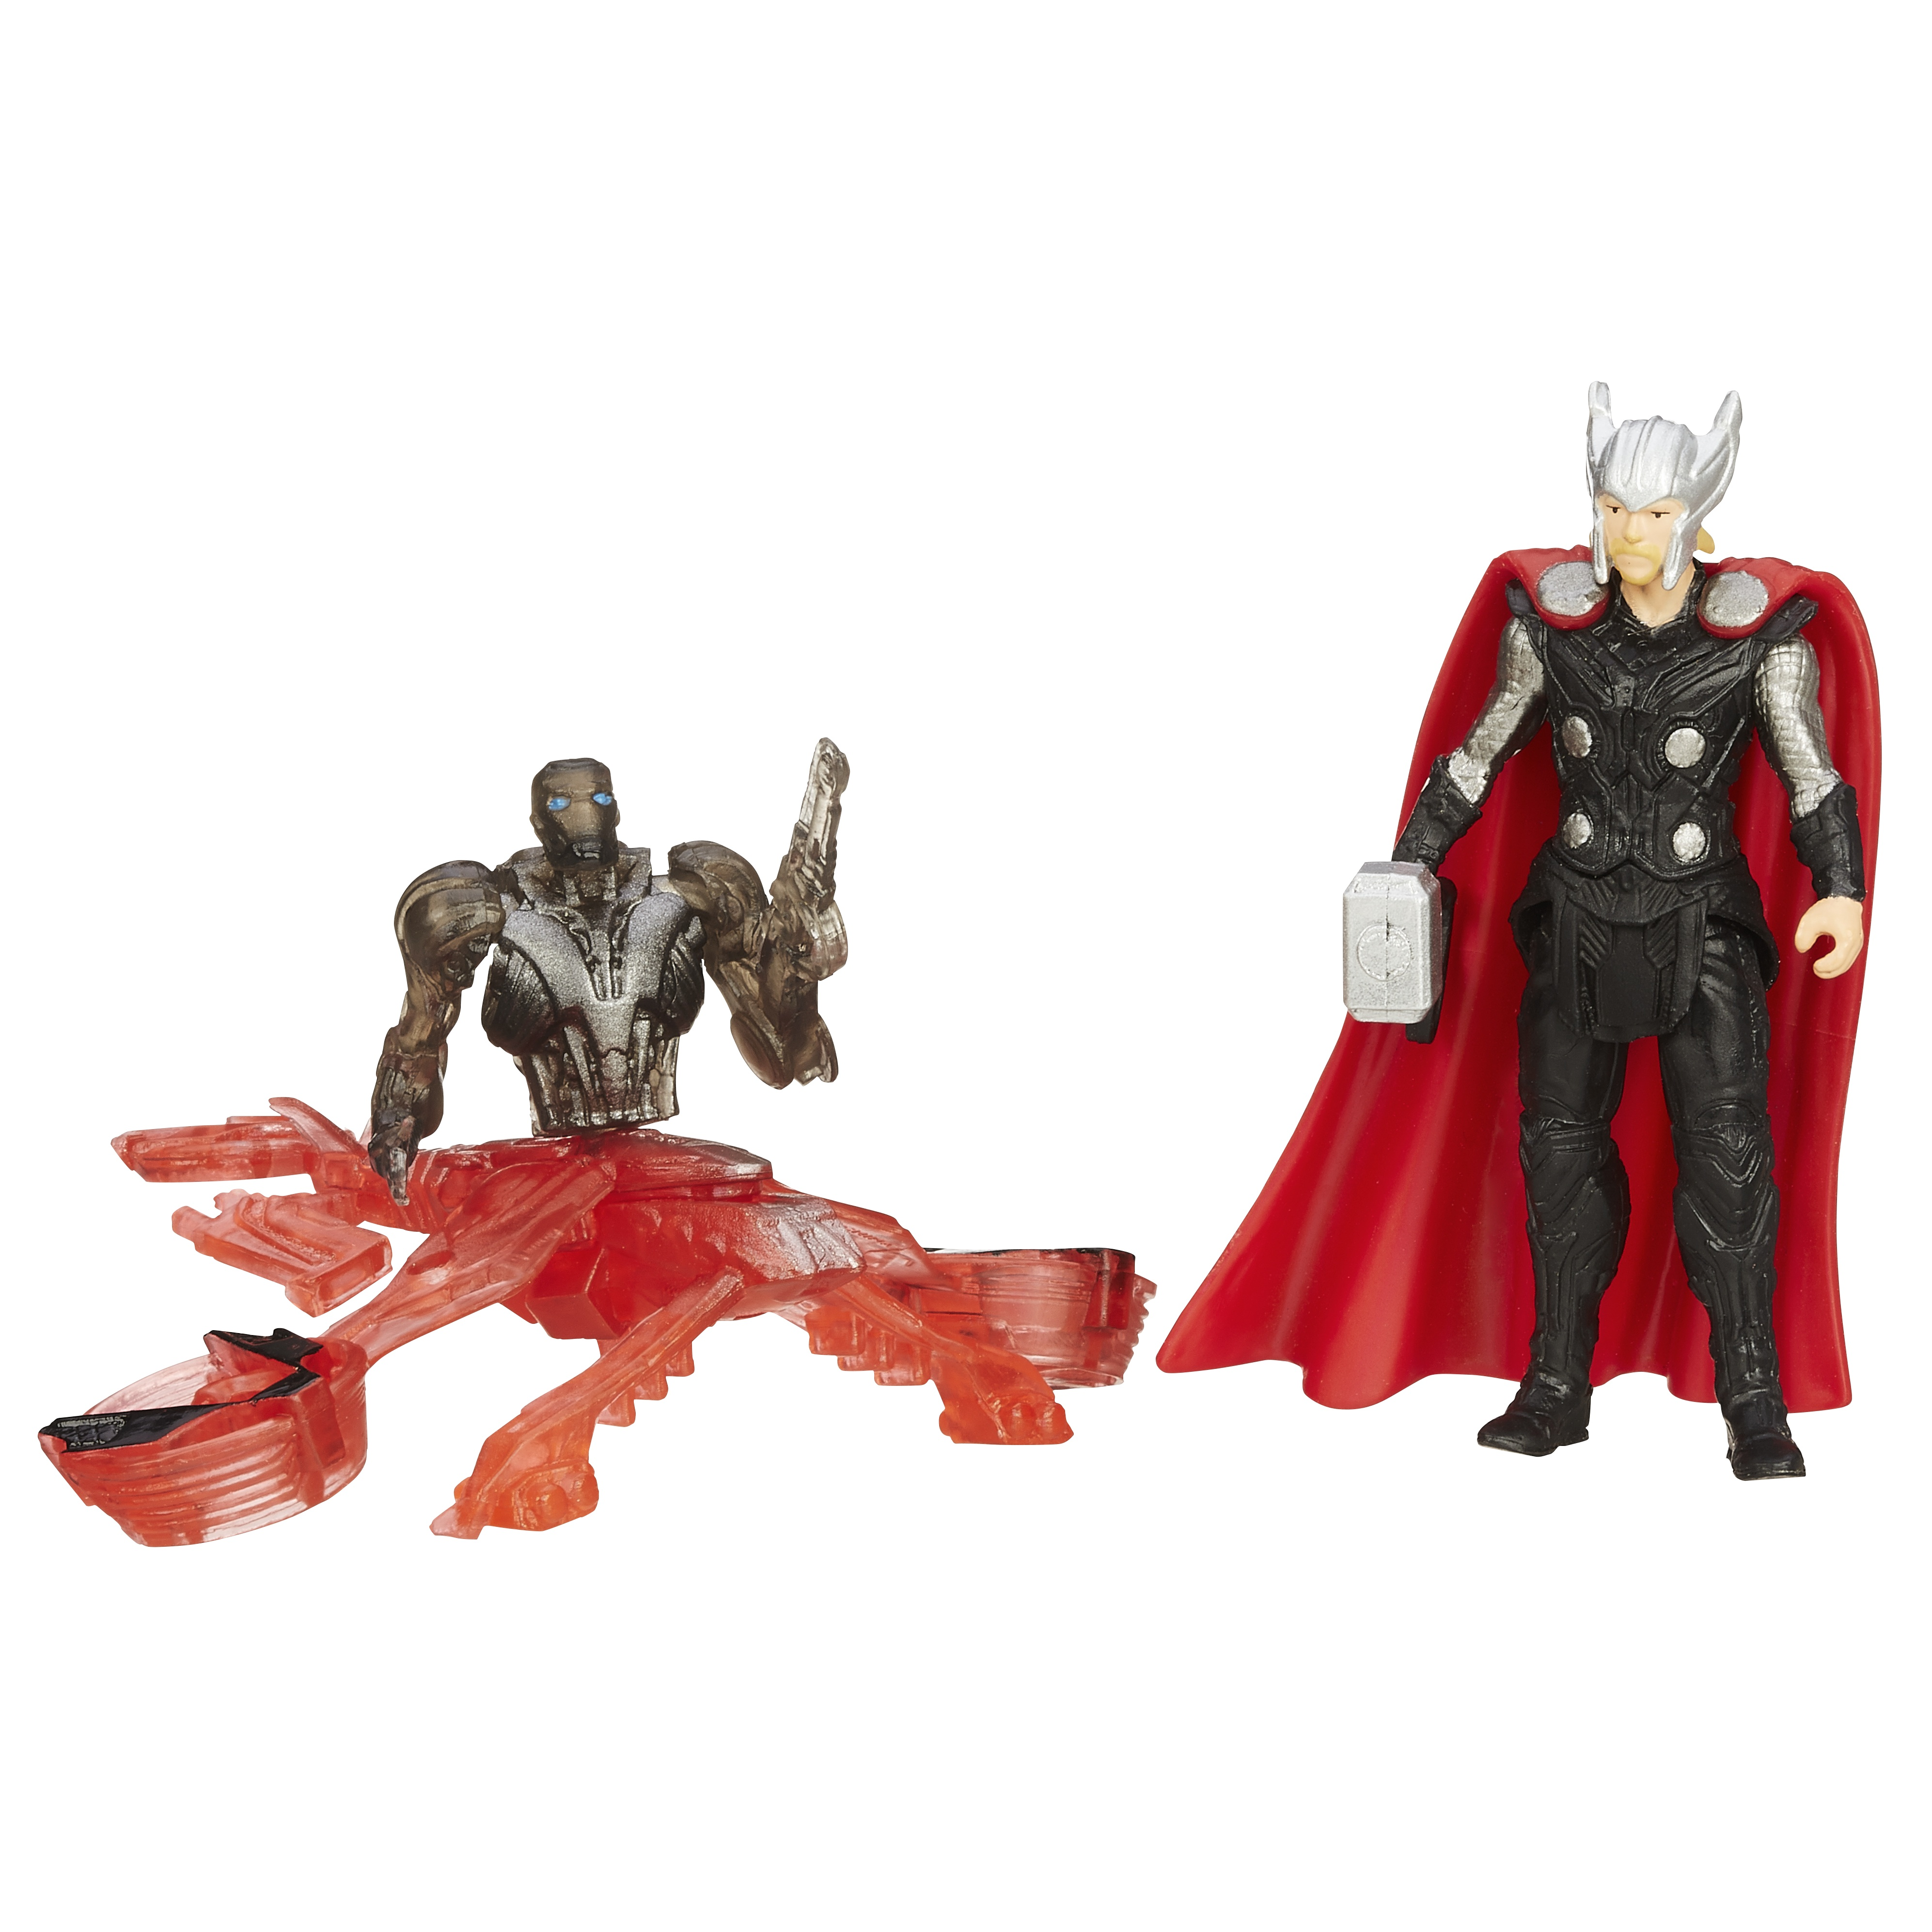 Toys Age 2 5 : Check out hasbro s avengers age of ultron toys graphic